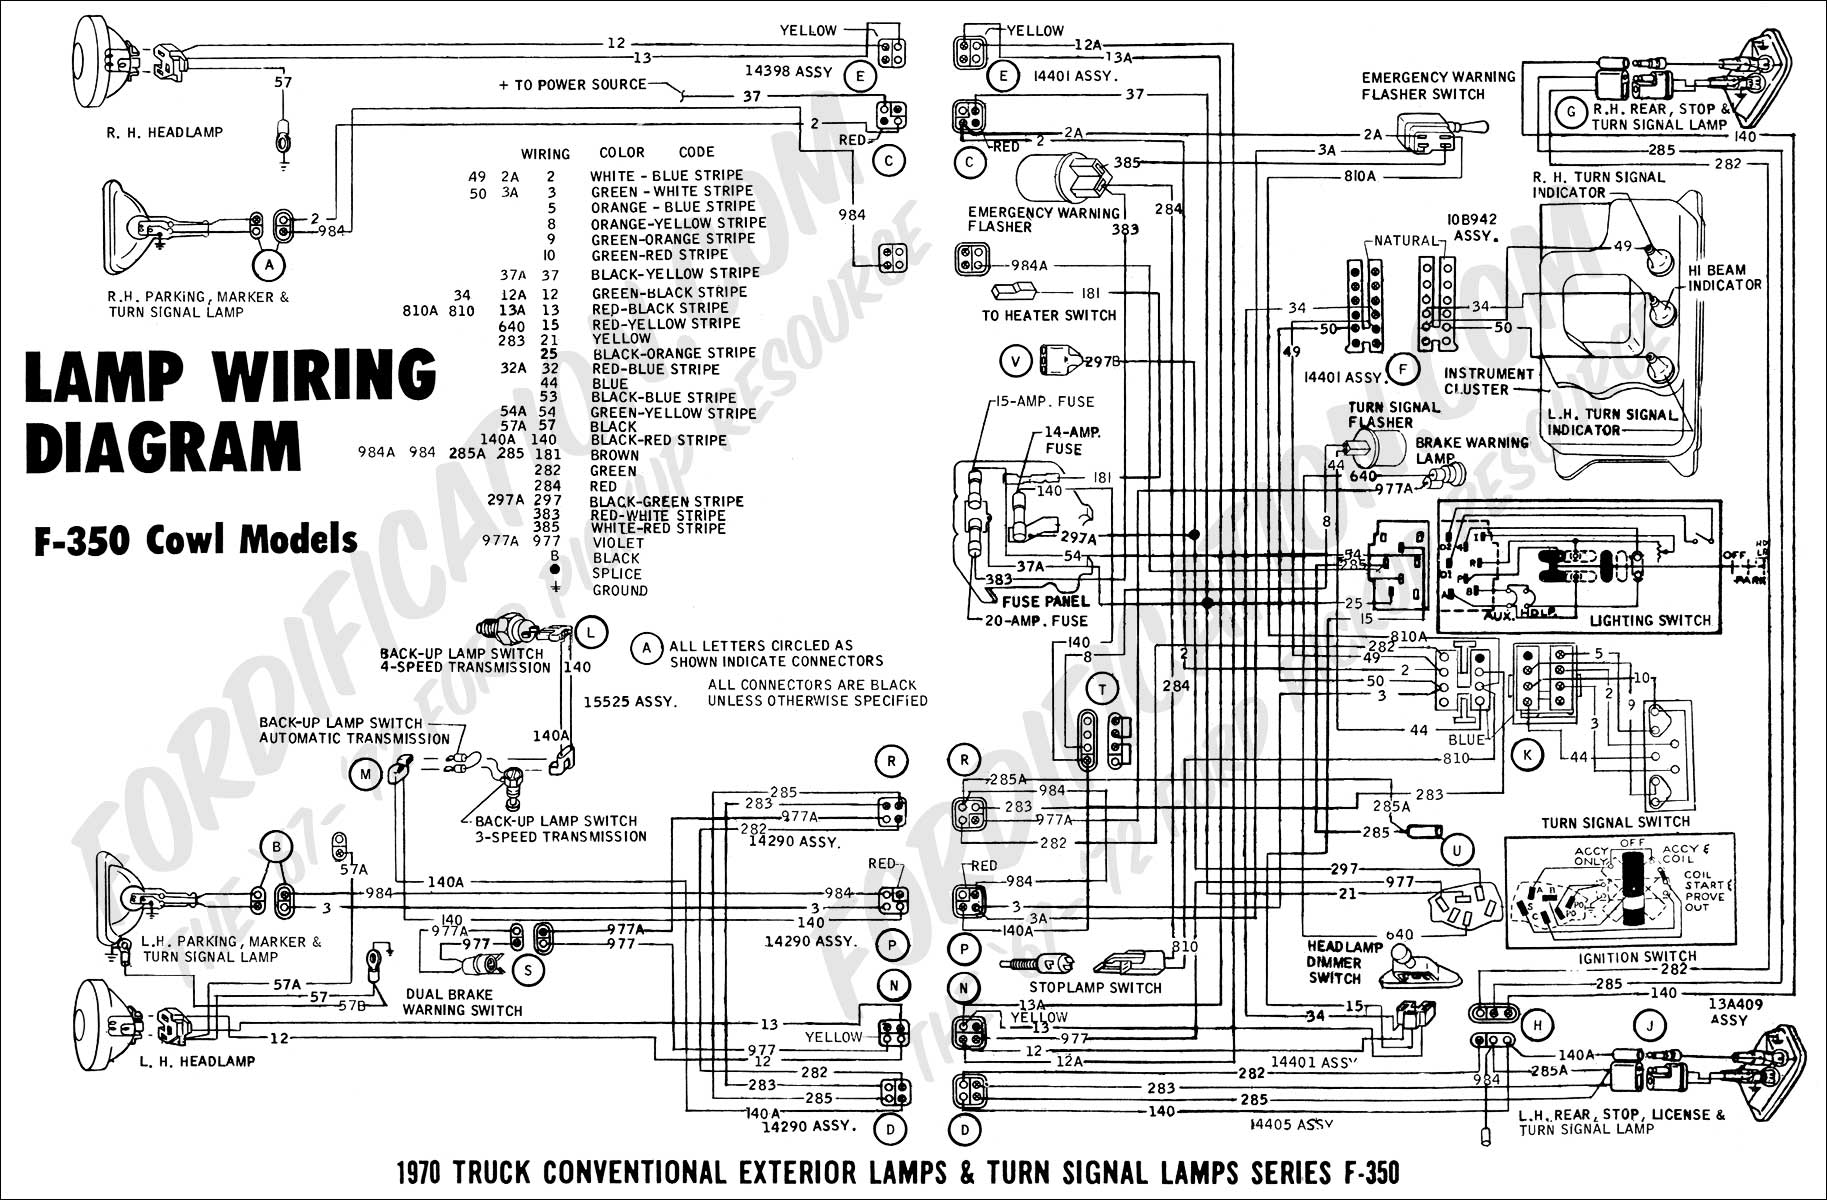 Ford Wiring Diagrams - Wiring Diagrams Thumbs on led resistor wiring, led wiring circuit 5 v, led light wiring guide,